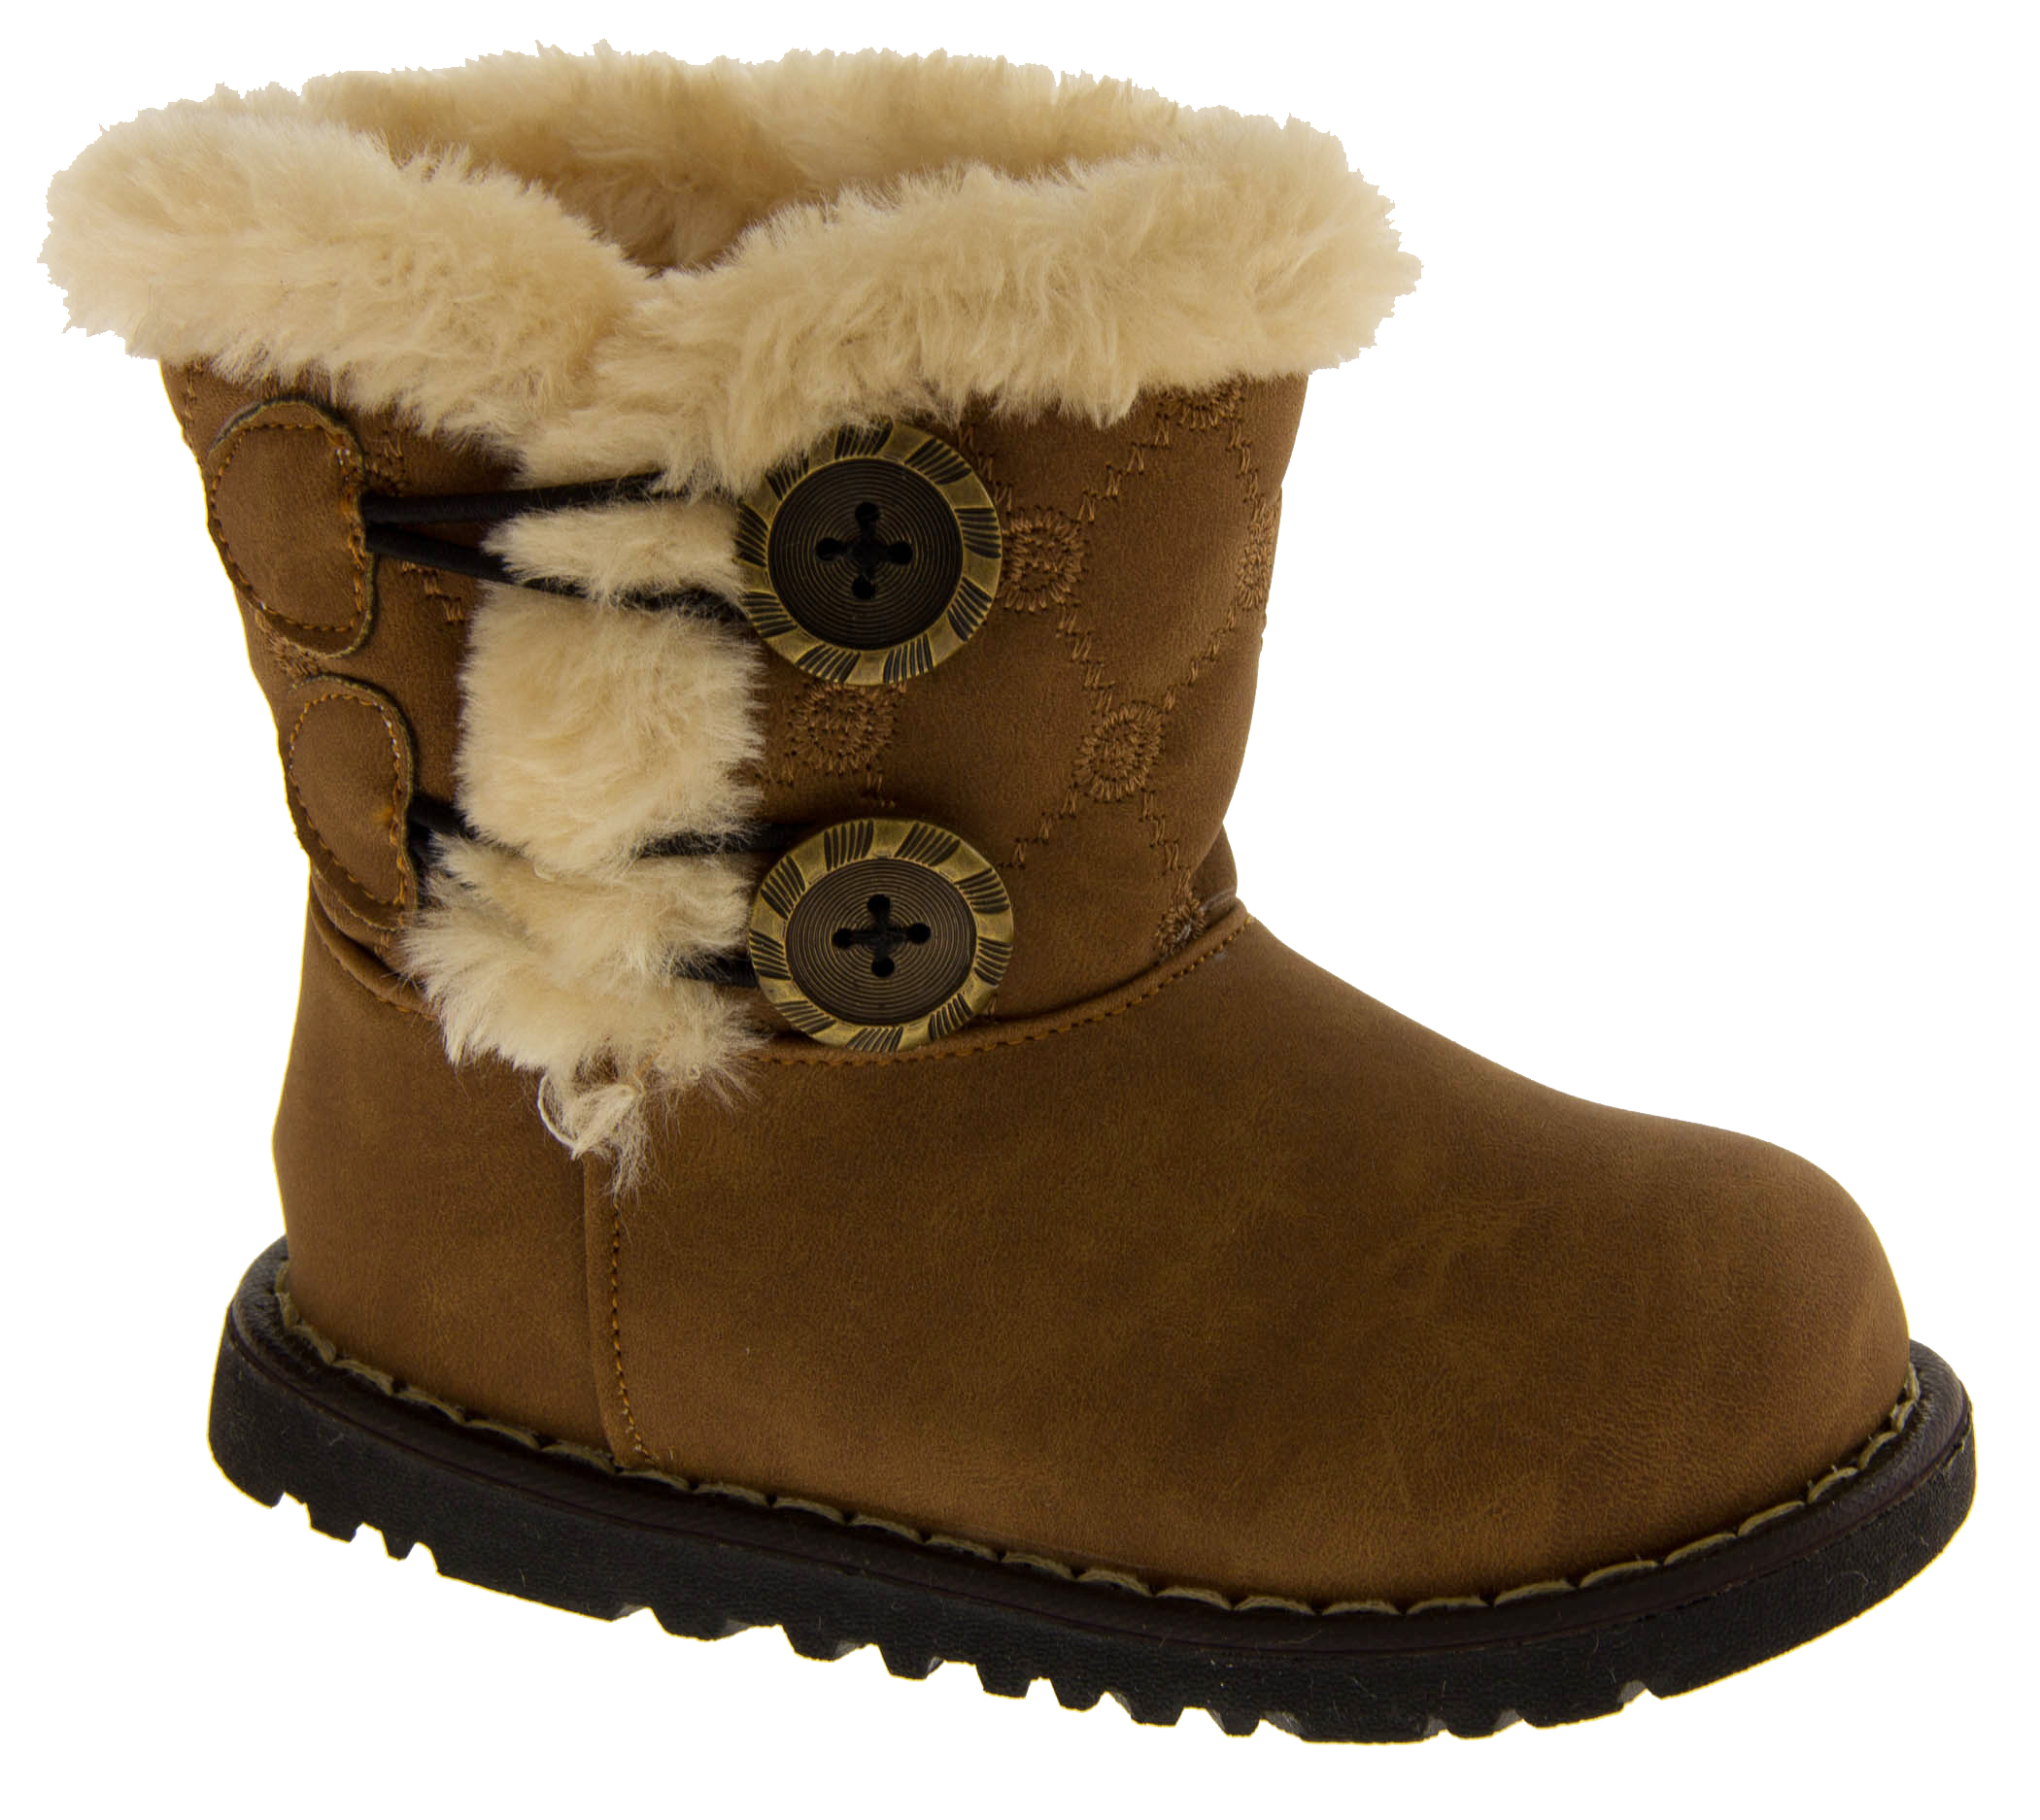 GARANIMALS BOY TODDLER WINTER BOOTS SIZE 4 BROWN RUBBER SOLE ADHESIVE STRAP NEW See more like this. BOYS: Columbia Toddler Powderbug Plus II Winter Boots, Blue - Size 4 BV Crazy 8 Peace Love Ponies Boots Winter Toddler Size 4 Baby Red Pink Shoes. Pre-Owned. $ Guaranteed by Fri, Sep. Buy It Now.